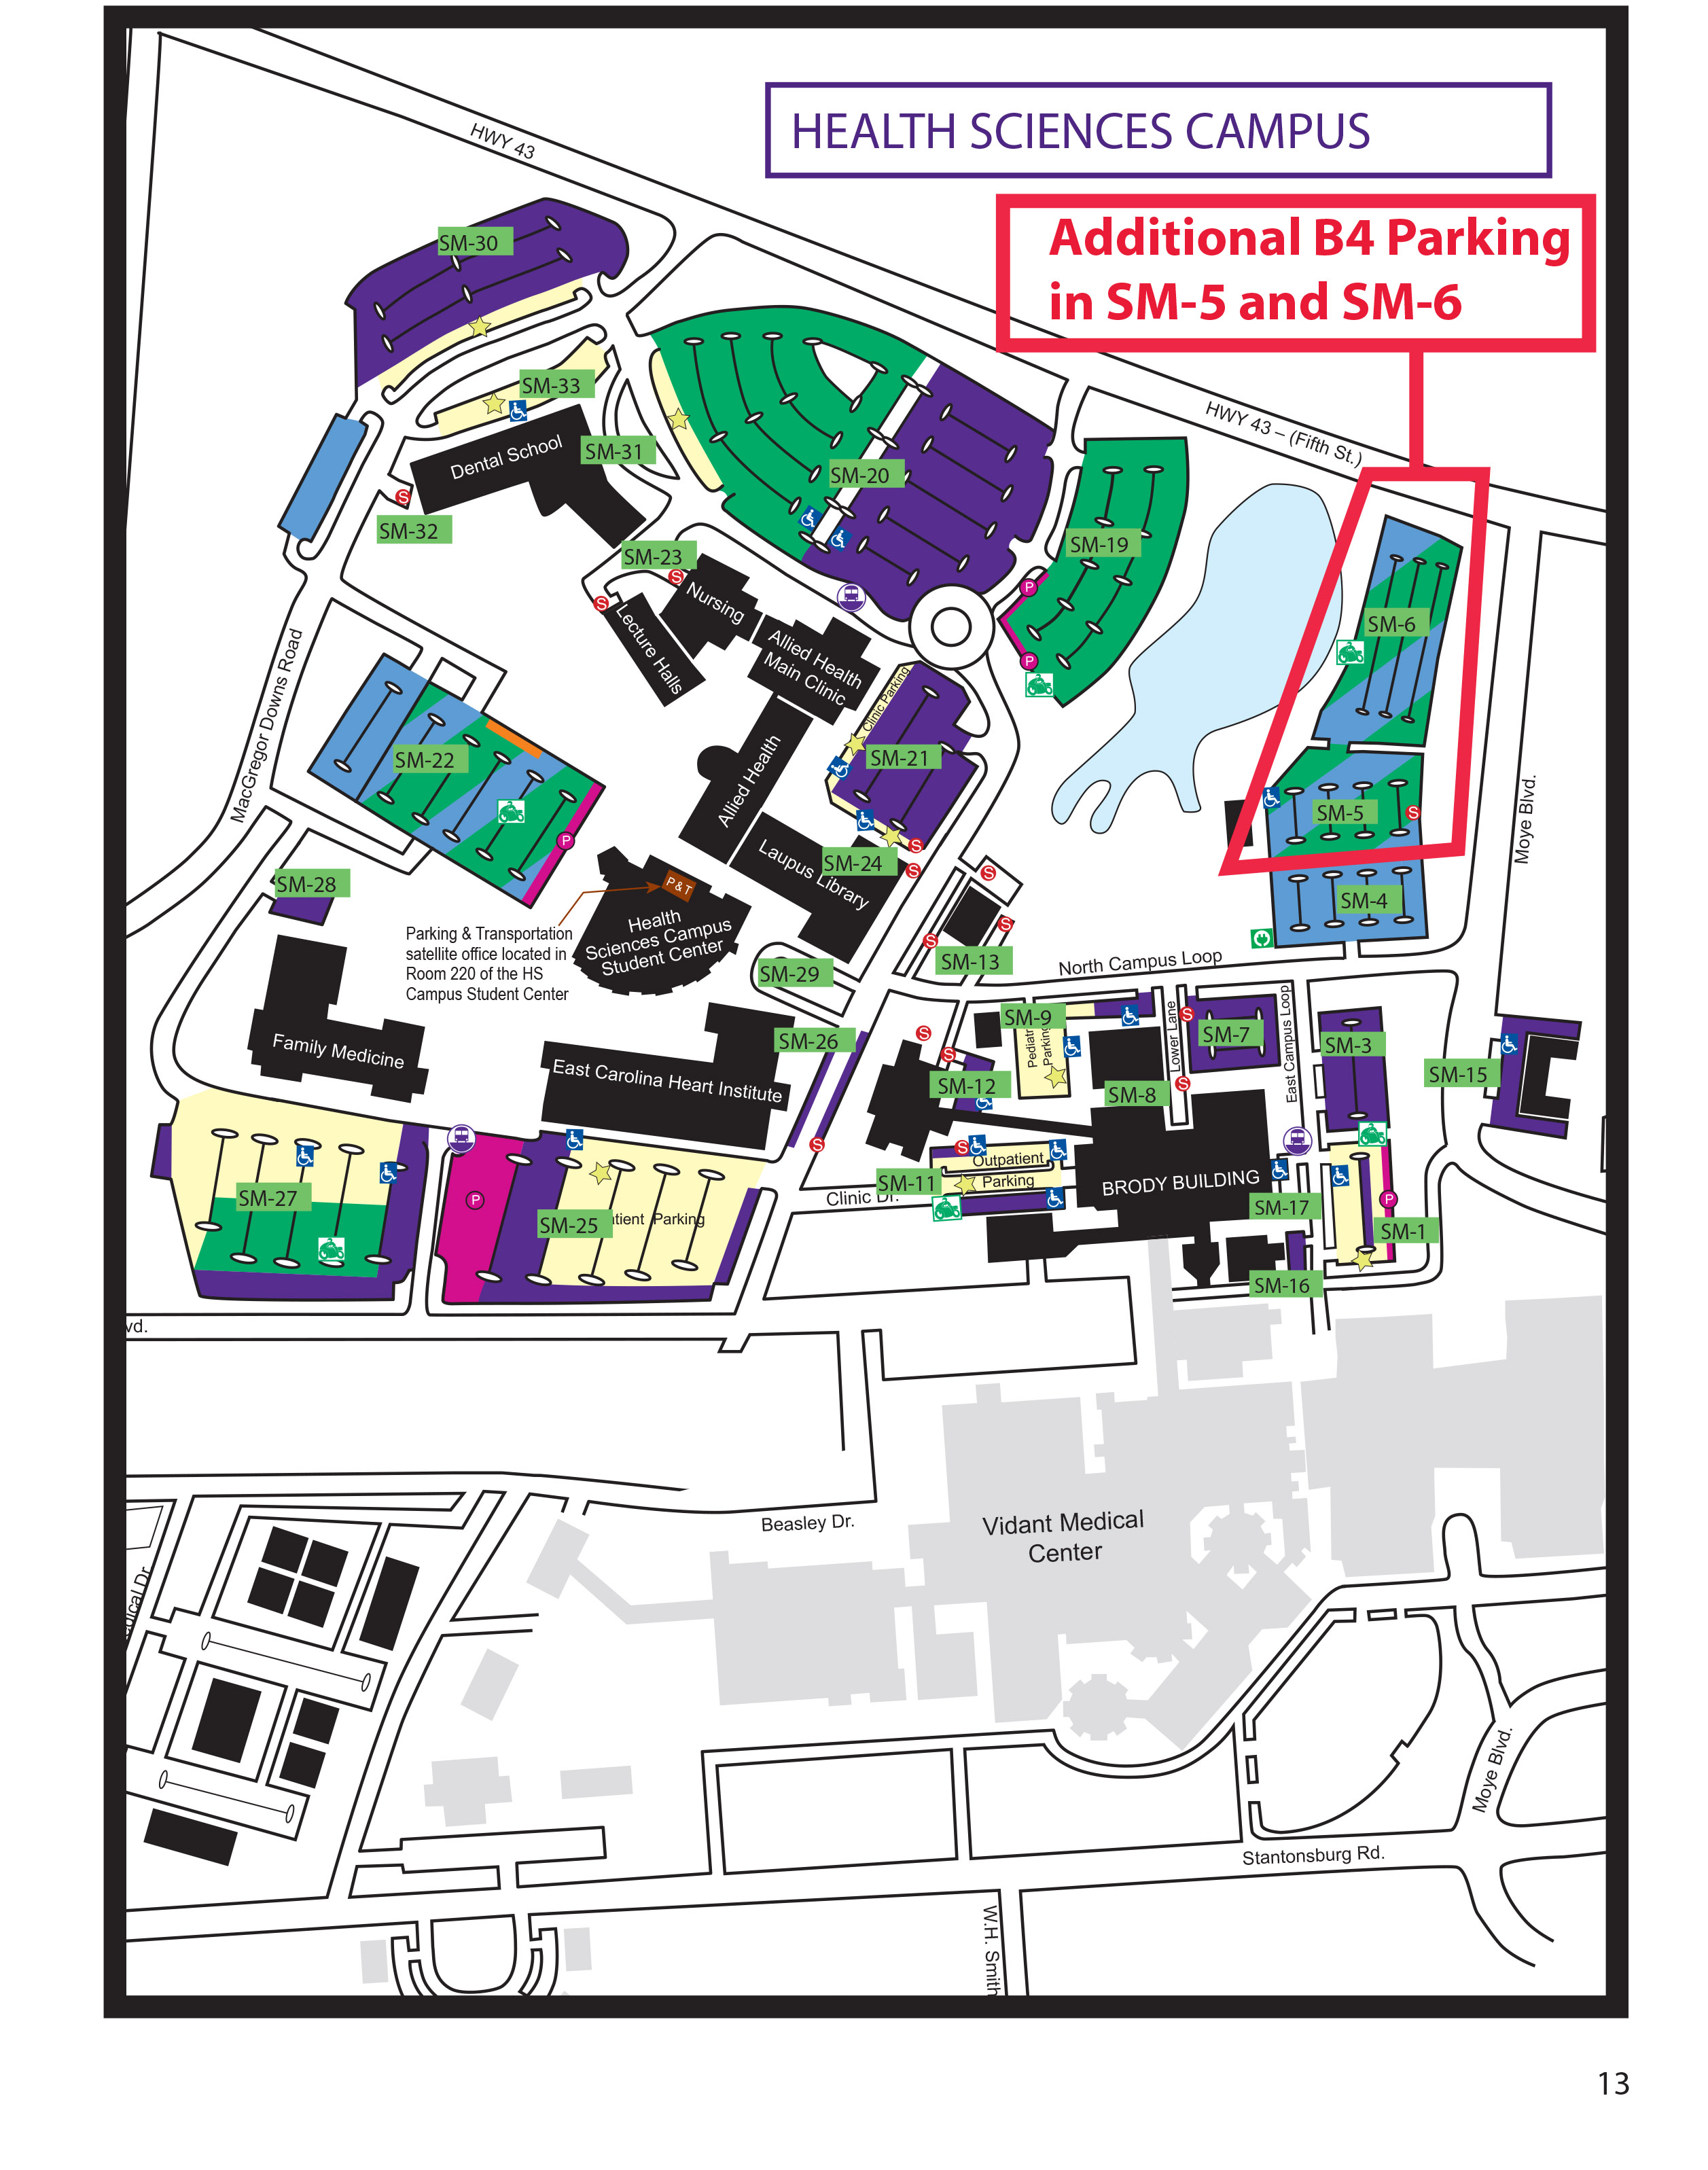 east carolina university campus map Welcome Parking Transportation Ecu east carolina university campus map